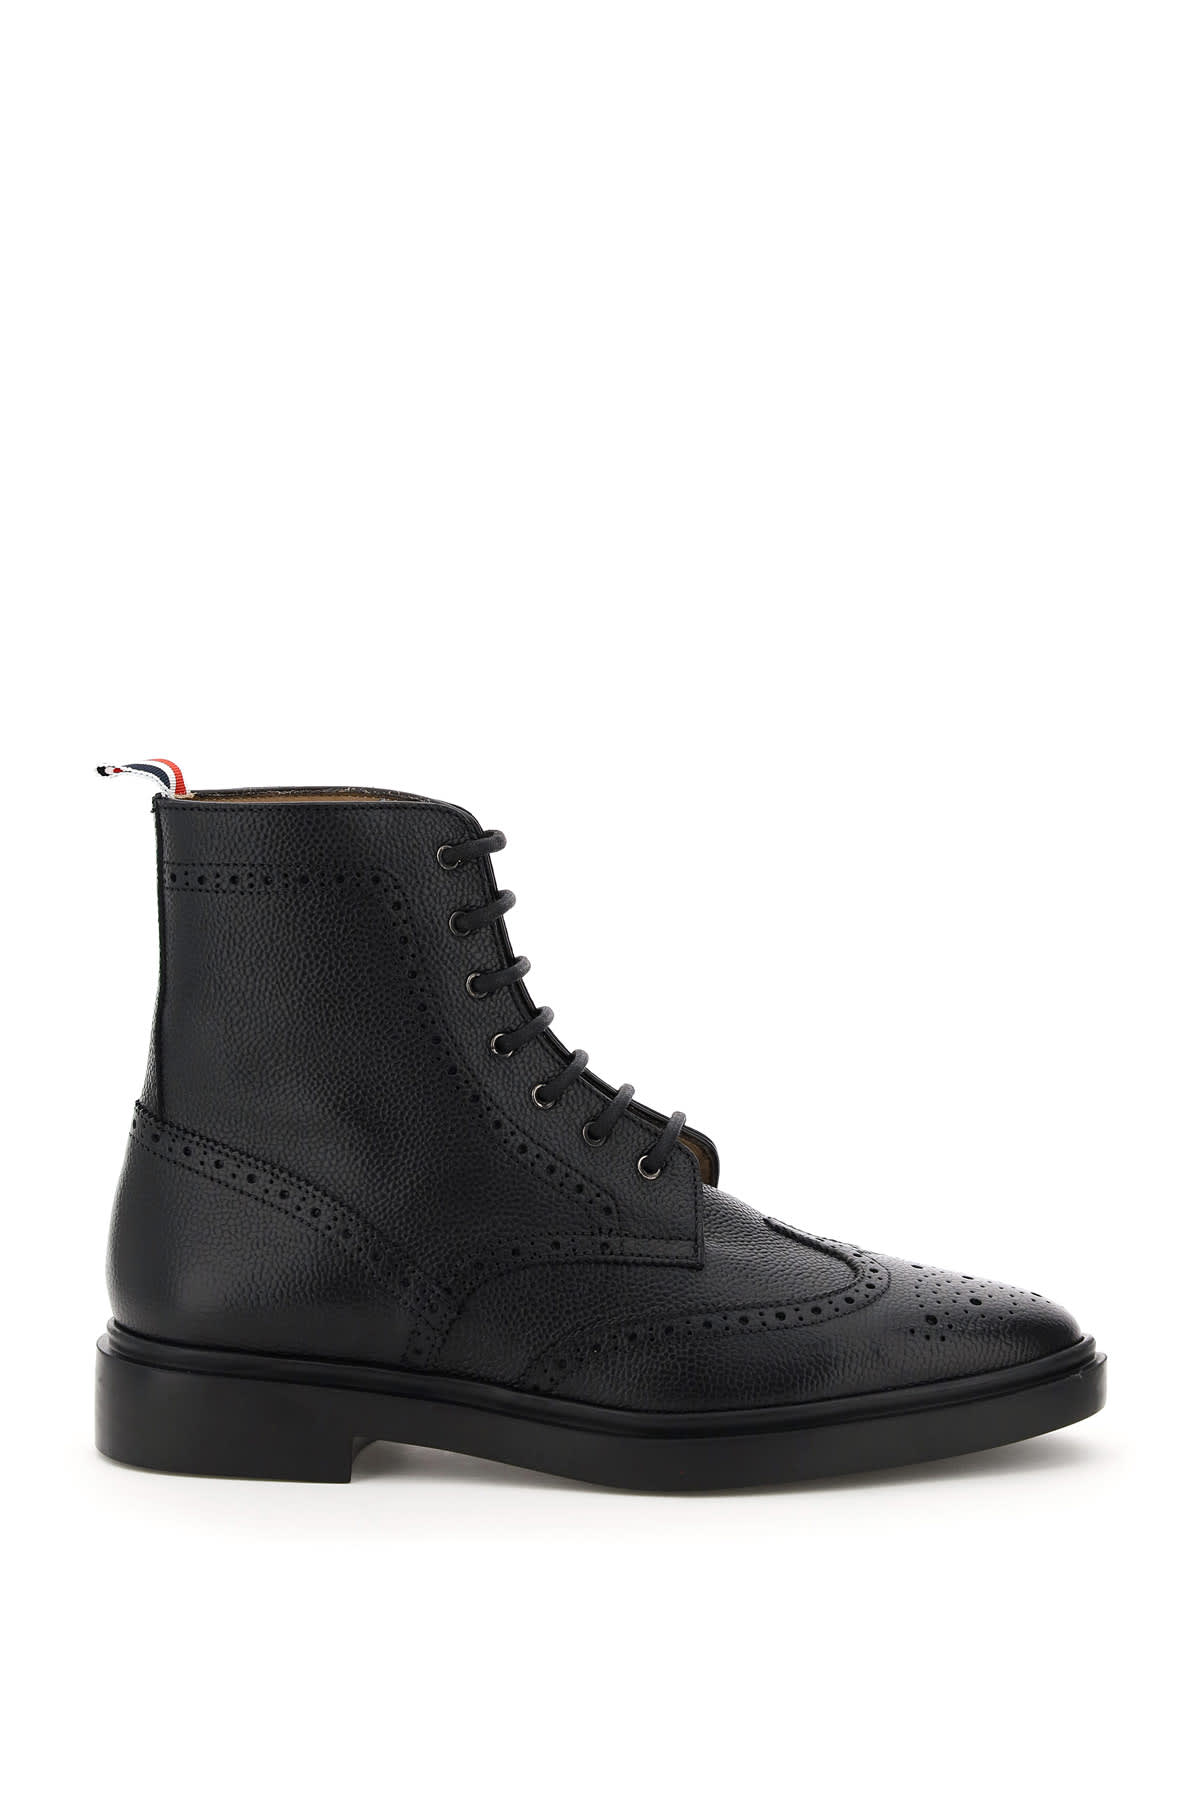 Thom Browne WINGTIP BROGUE ANKLE BOOTS